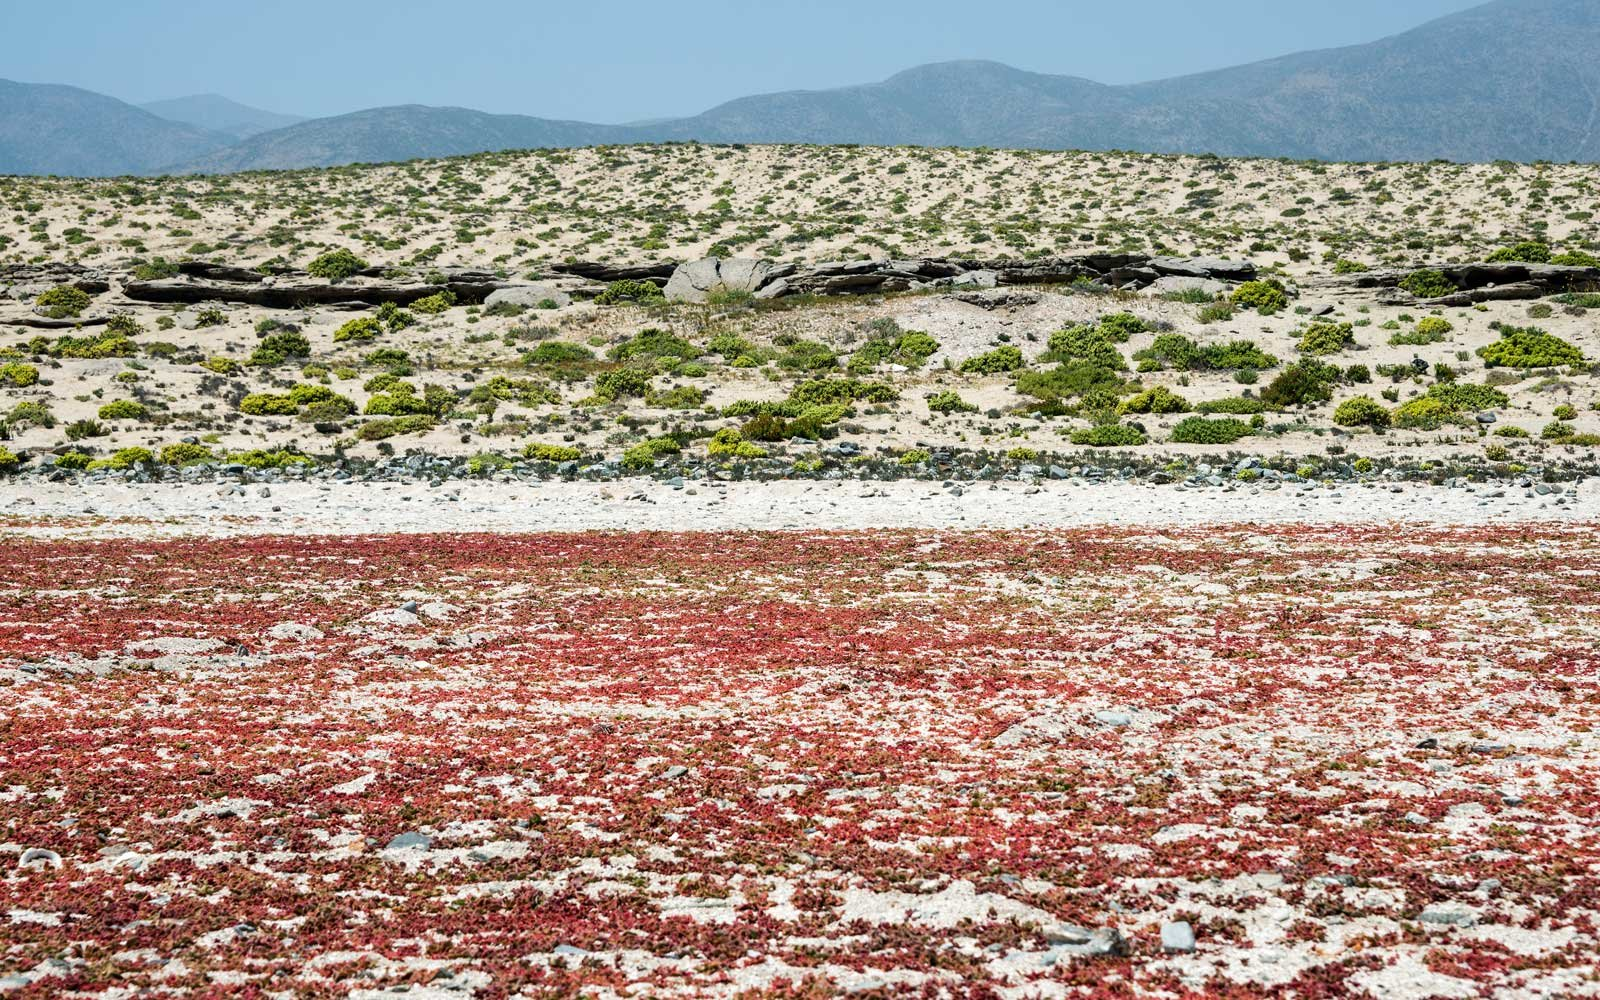 Red Flowers in the Atacama Desert